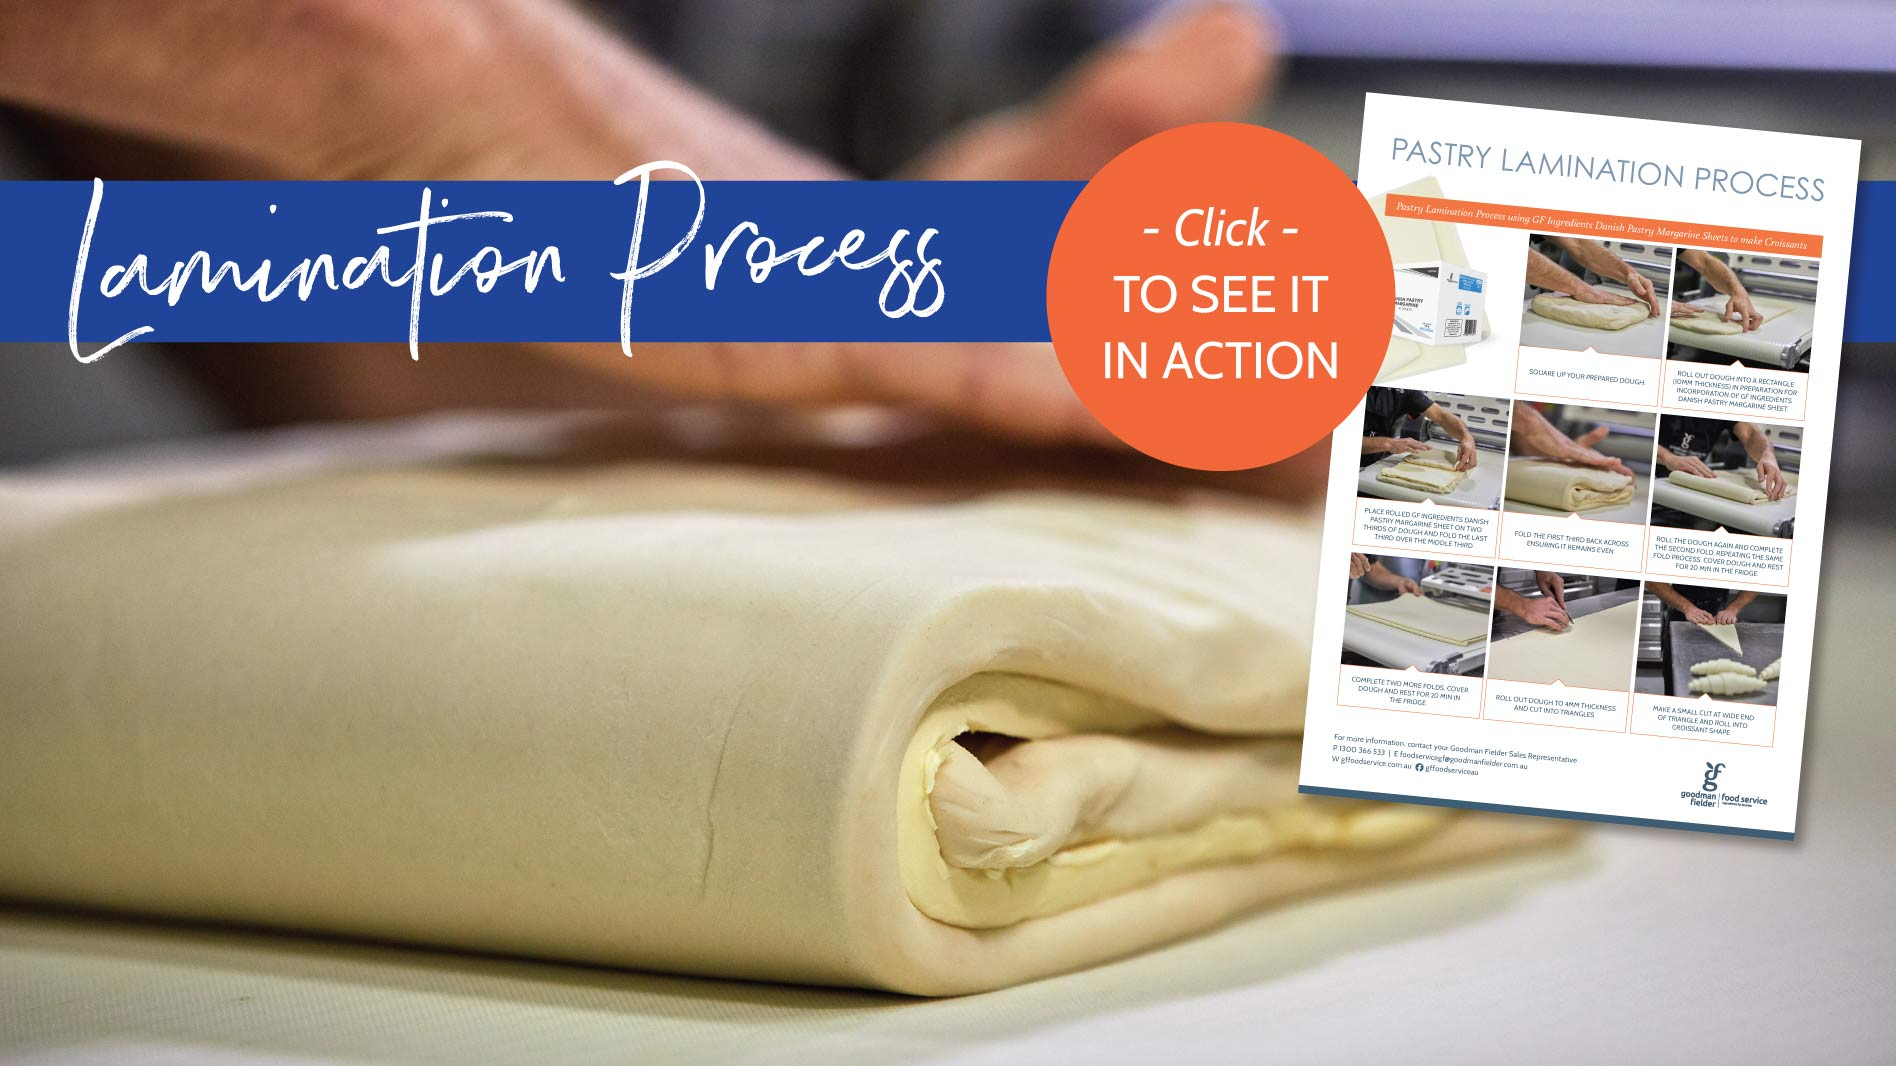 Lamination process using margarine sheets